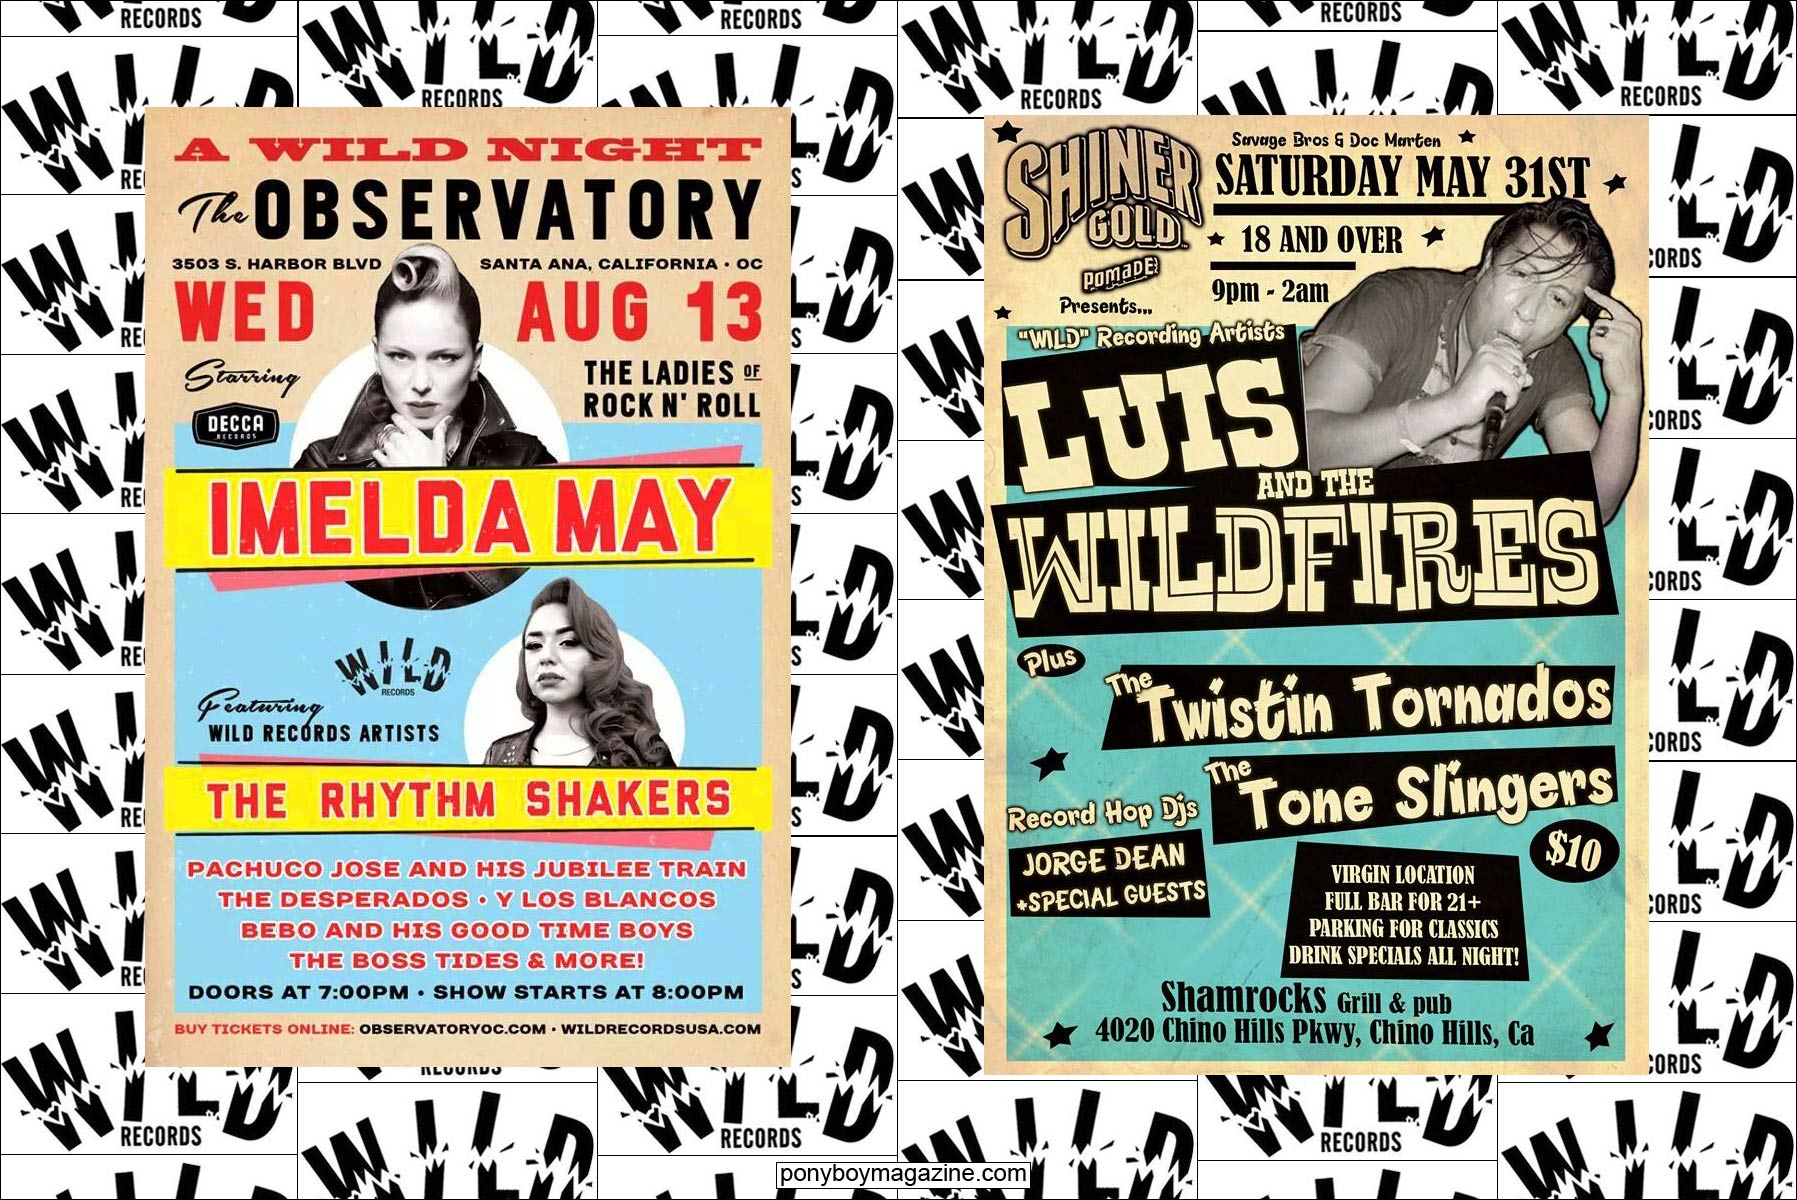 Flyers of rockabilly acts on the Wild Records label from Hollywood, CA. Ponyboy Magazine.